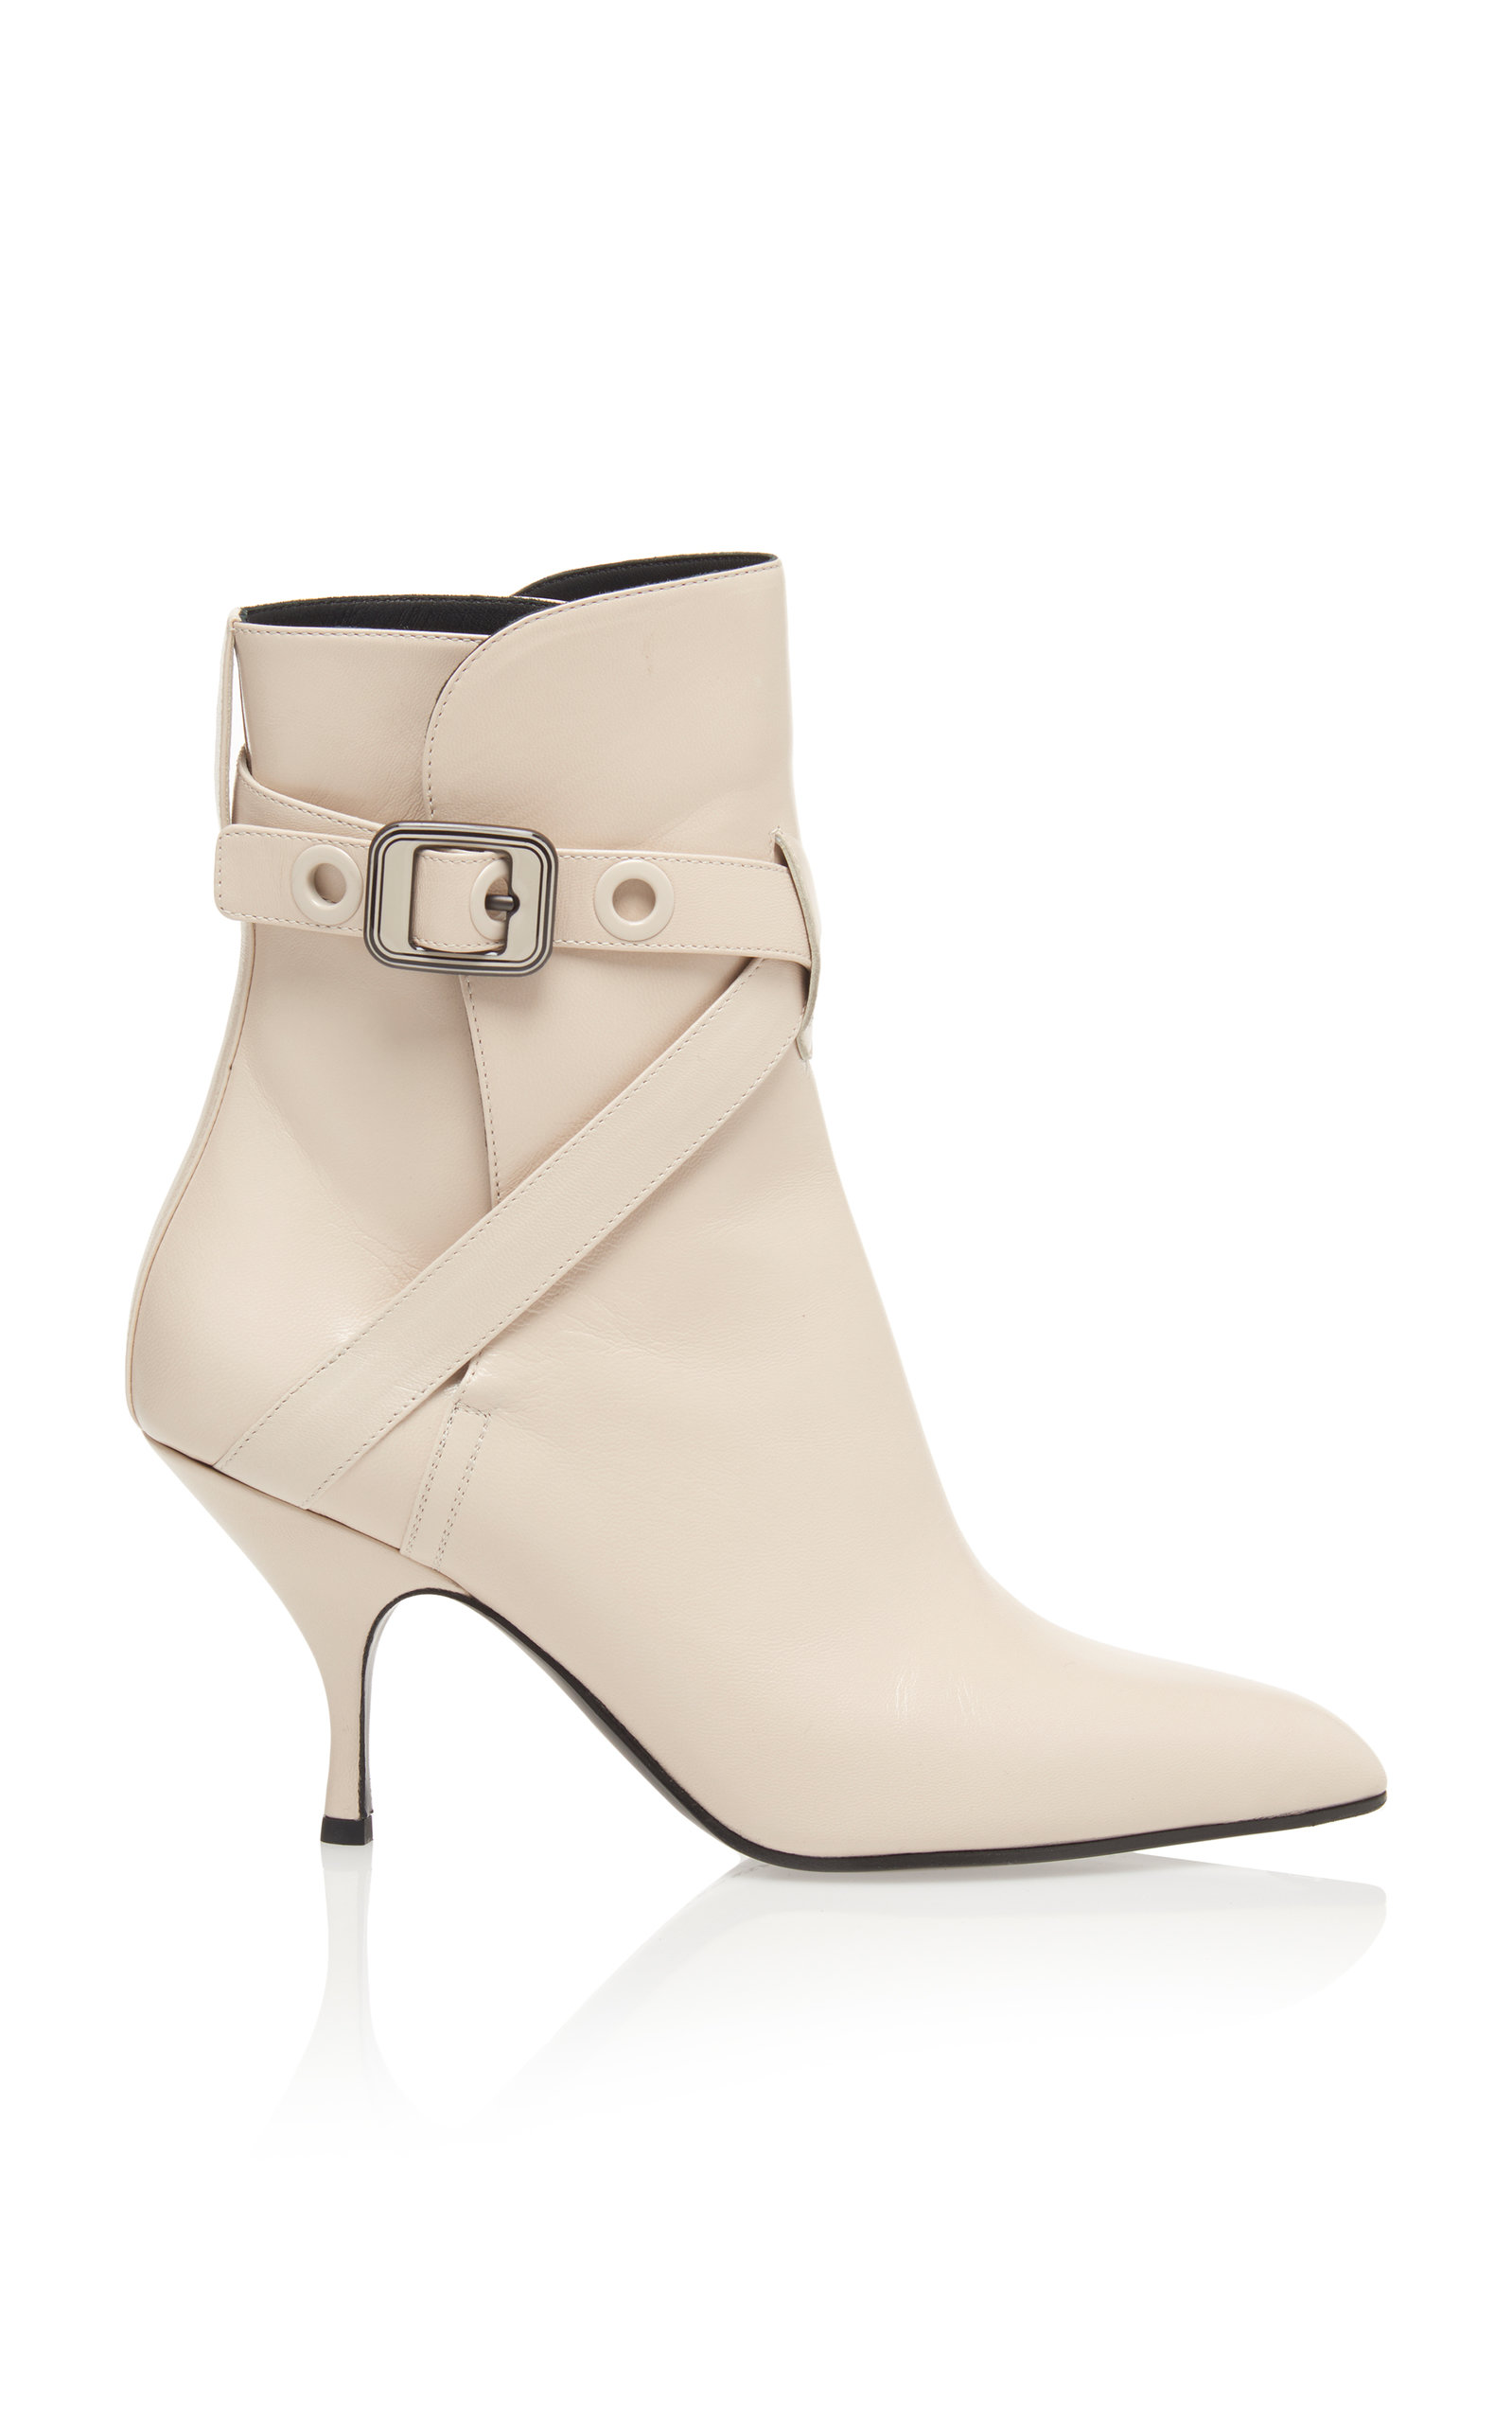 Moodec Leather Ankle Boots, White